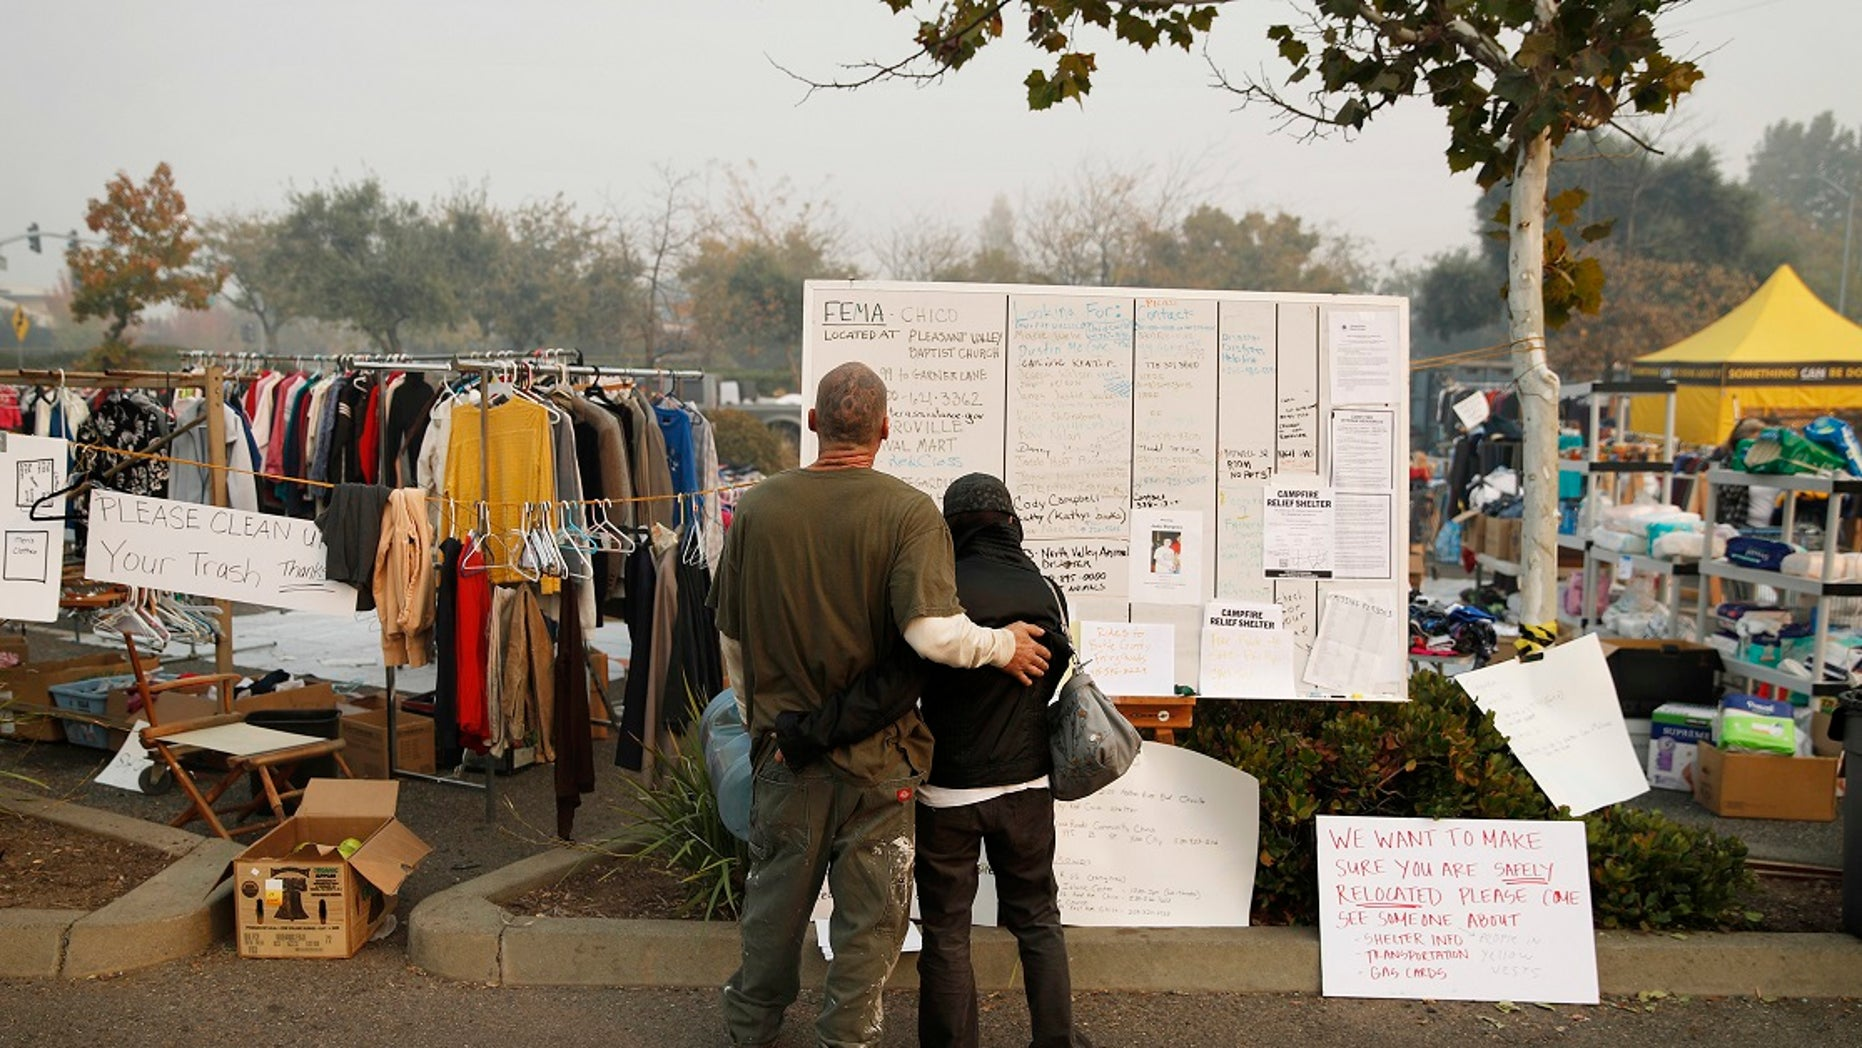 Tera Hickerson, right, and Columbus Holt embrace as they look at a board with information for services at a makeshift encampment outside a Walmart store for people displaced by the Camp Fire.